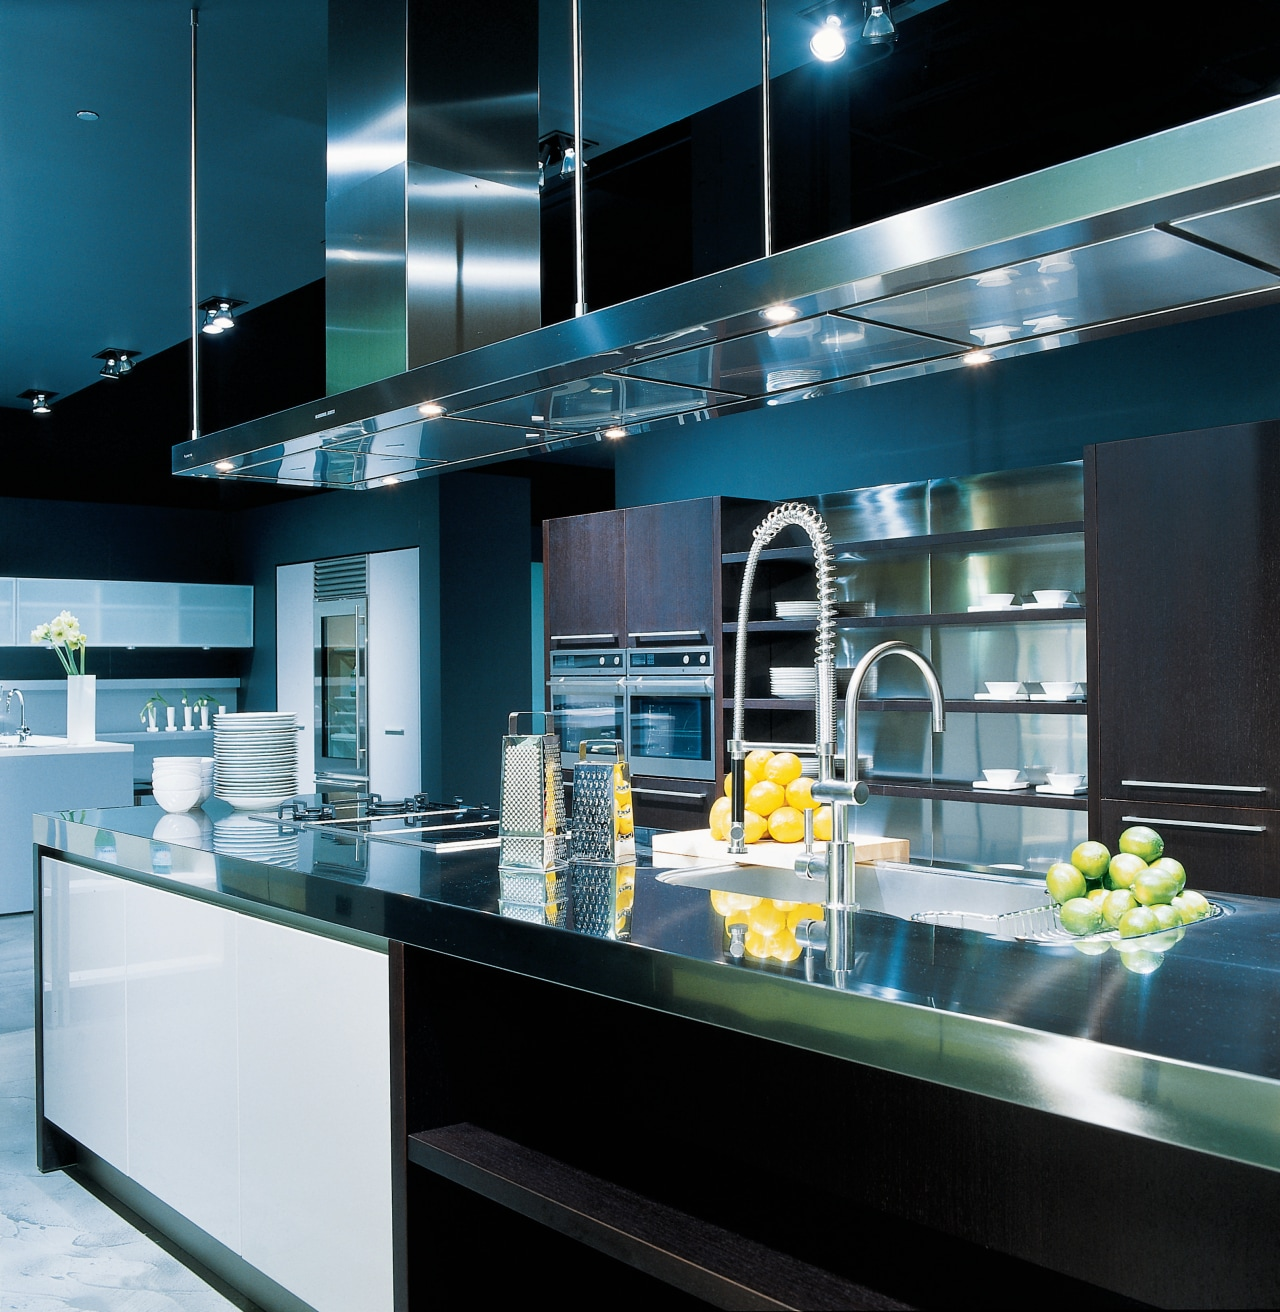 View of a contemporary kitchen involving many stainless countertop, glass, interior design, kitchen, black, teal